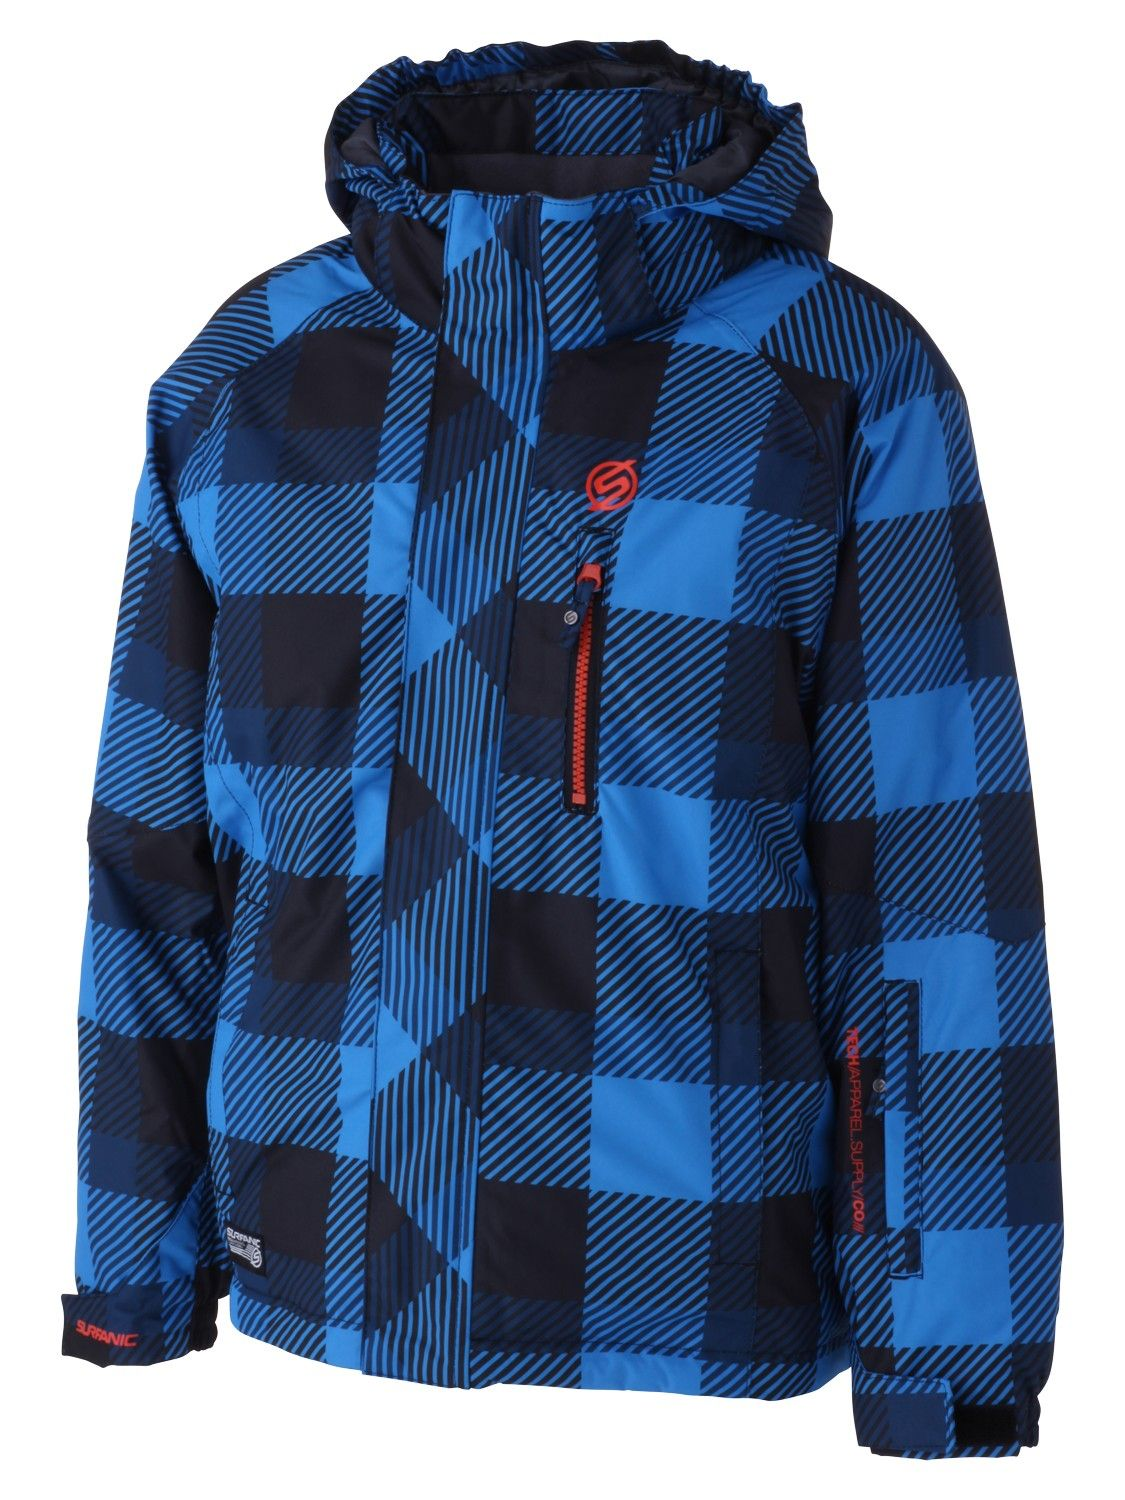 Boys ski jackets from Spyder, Obermeyer, Kjus and more Shop for Boys ski jackets from Spyder, Obermeyer, Kjus and more and other ski and snowboard gear and clothing at buzz24.ga - % Satisfication, expert advice, huge selection and top quality brands.